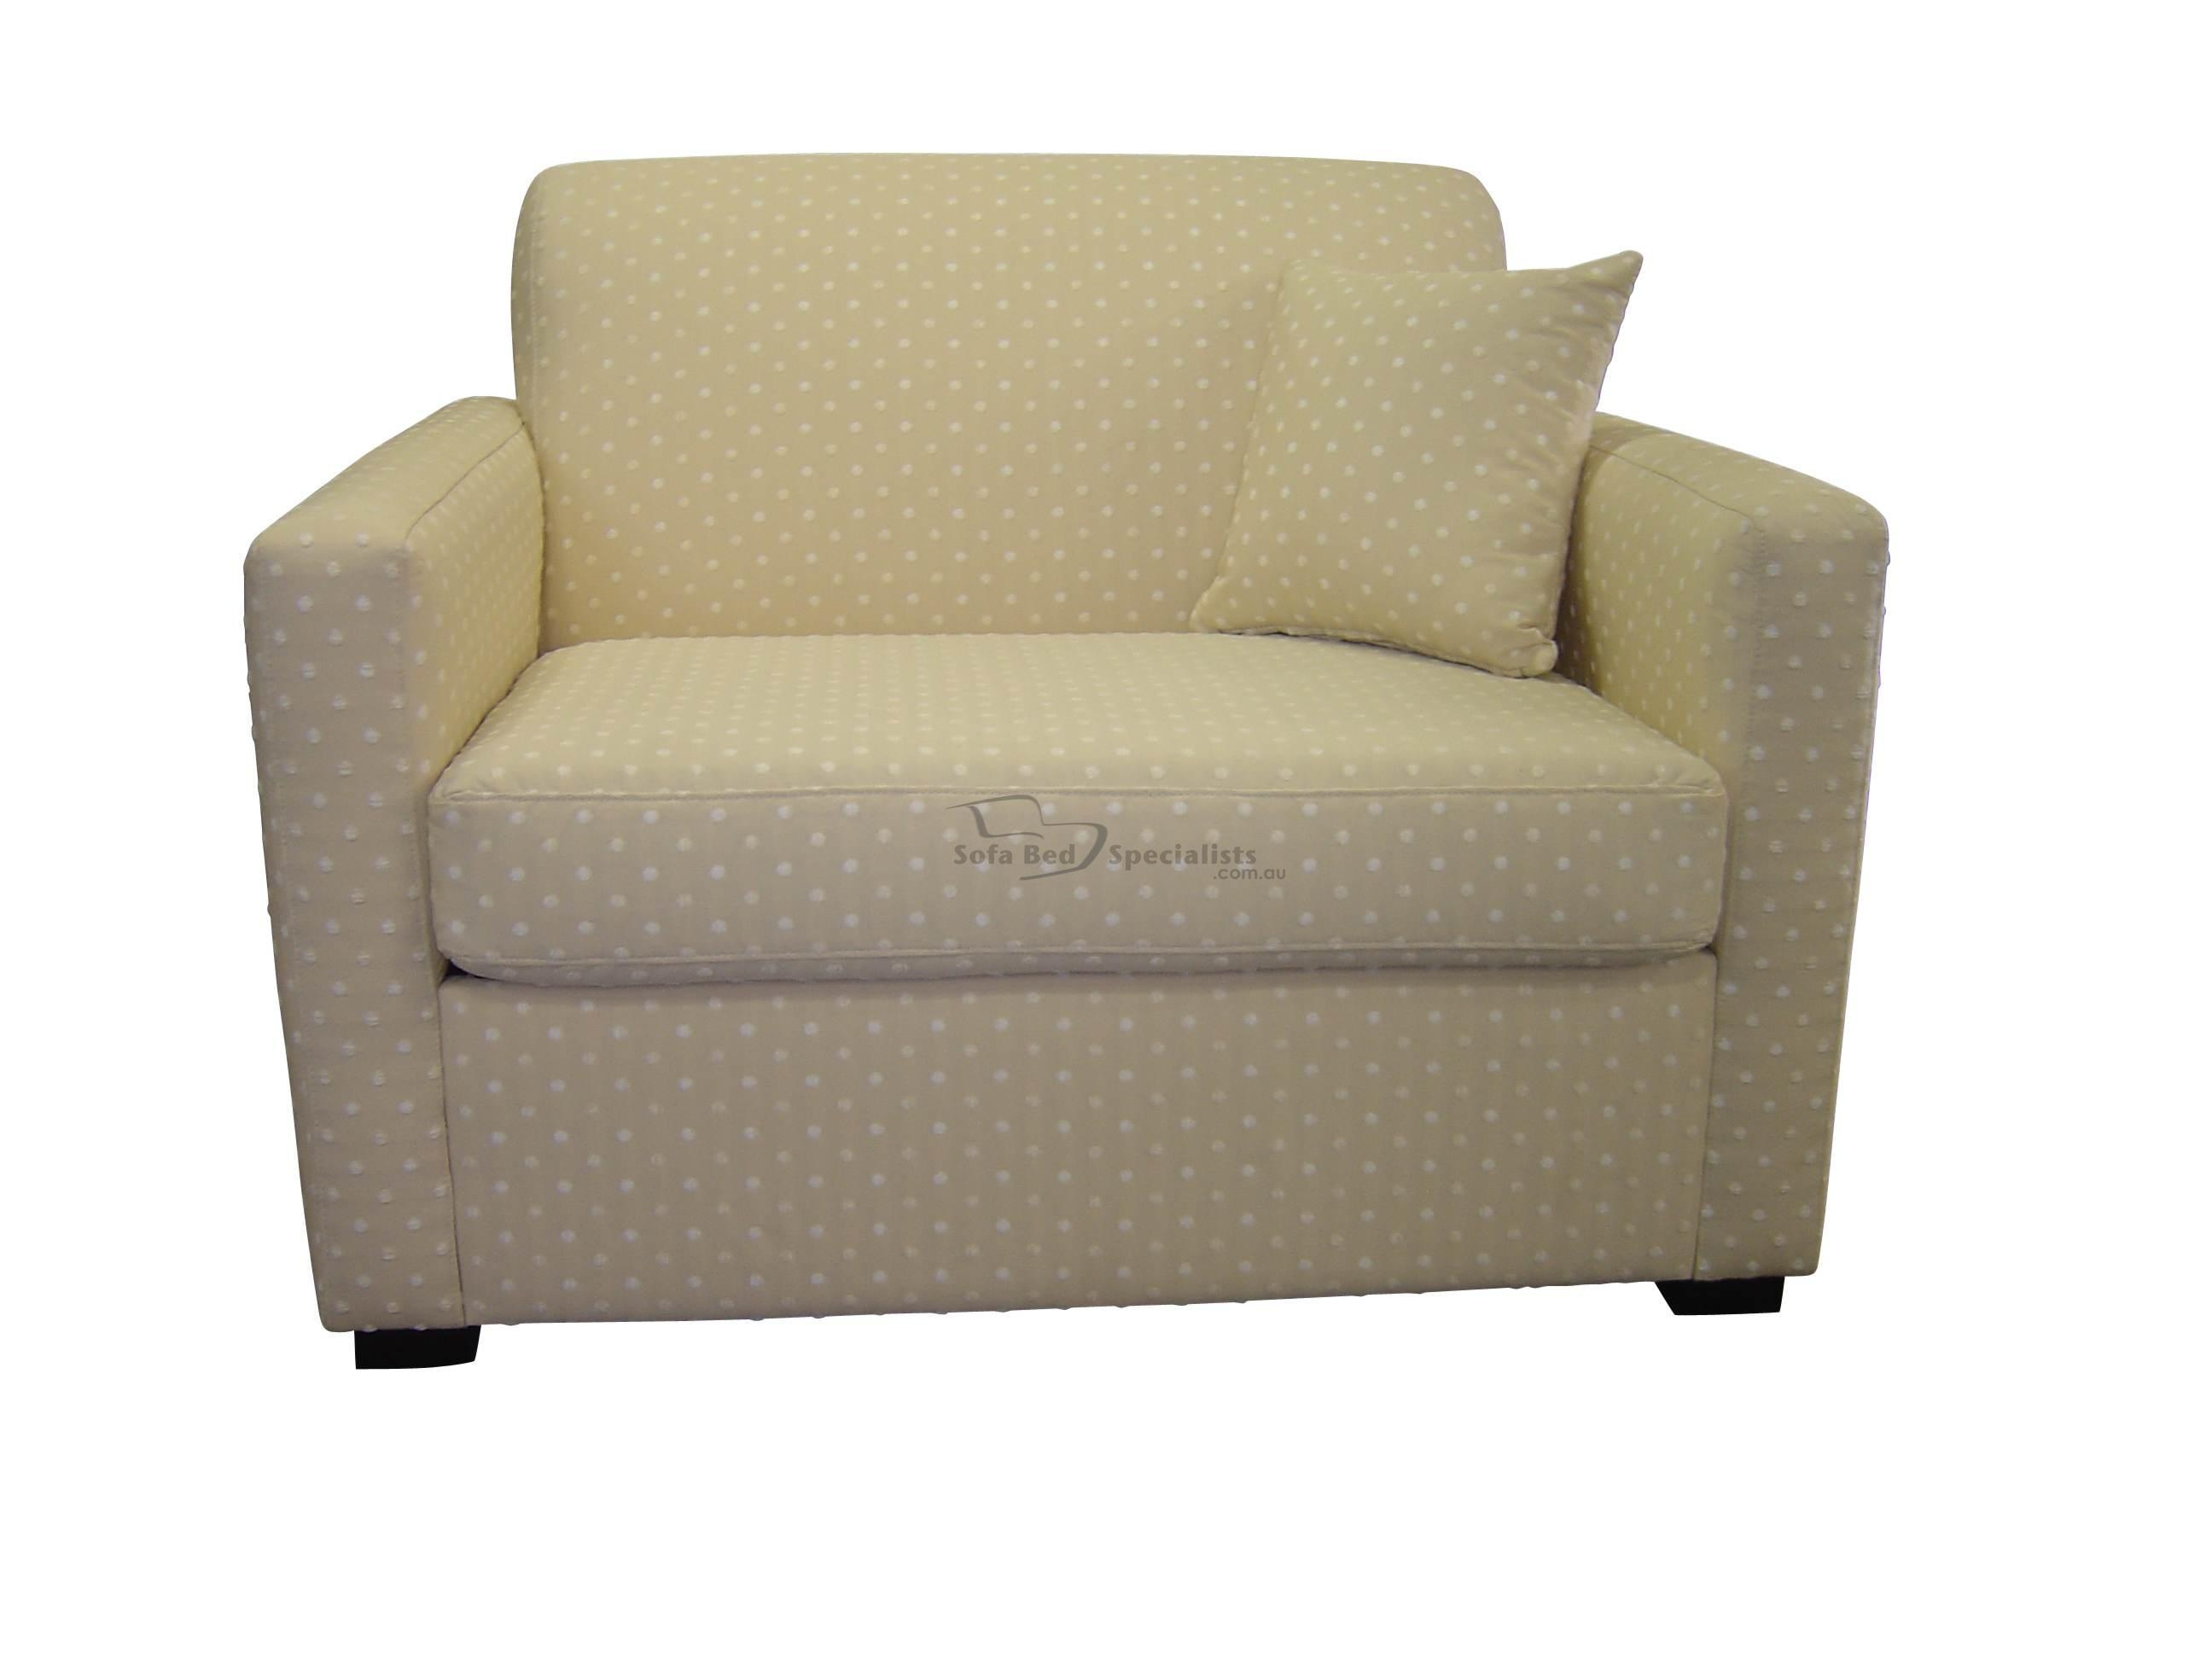 Chair Sofabed Bowman – Sofa Bed Specialists Intended For Single Chair Sofa Beds (View 7 of 22)